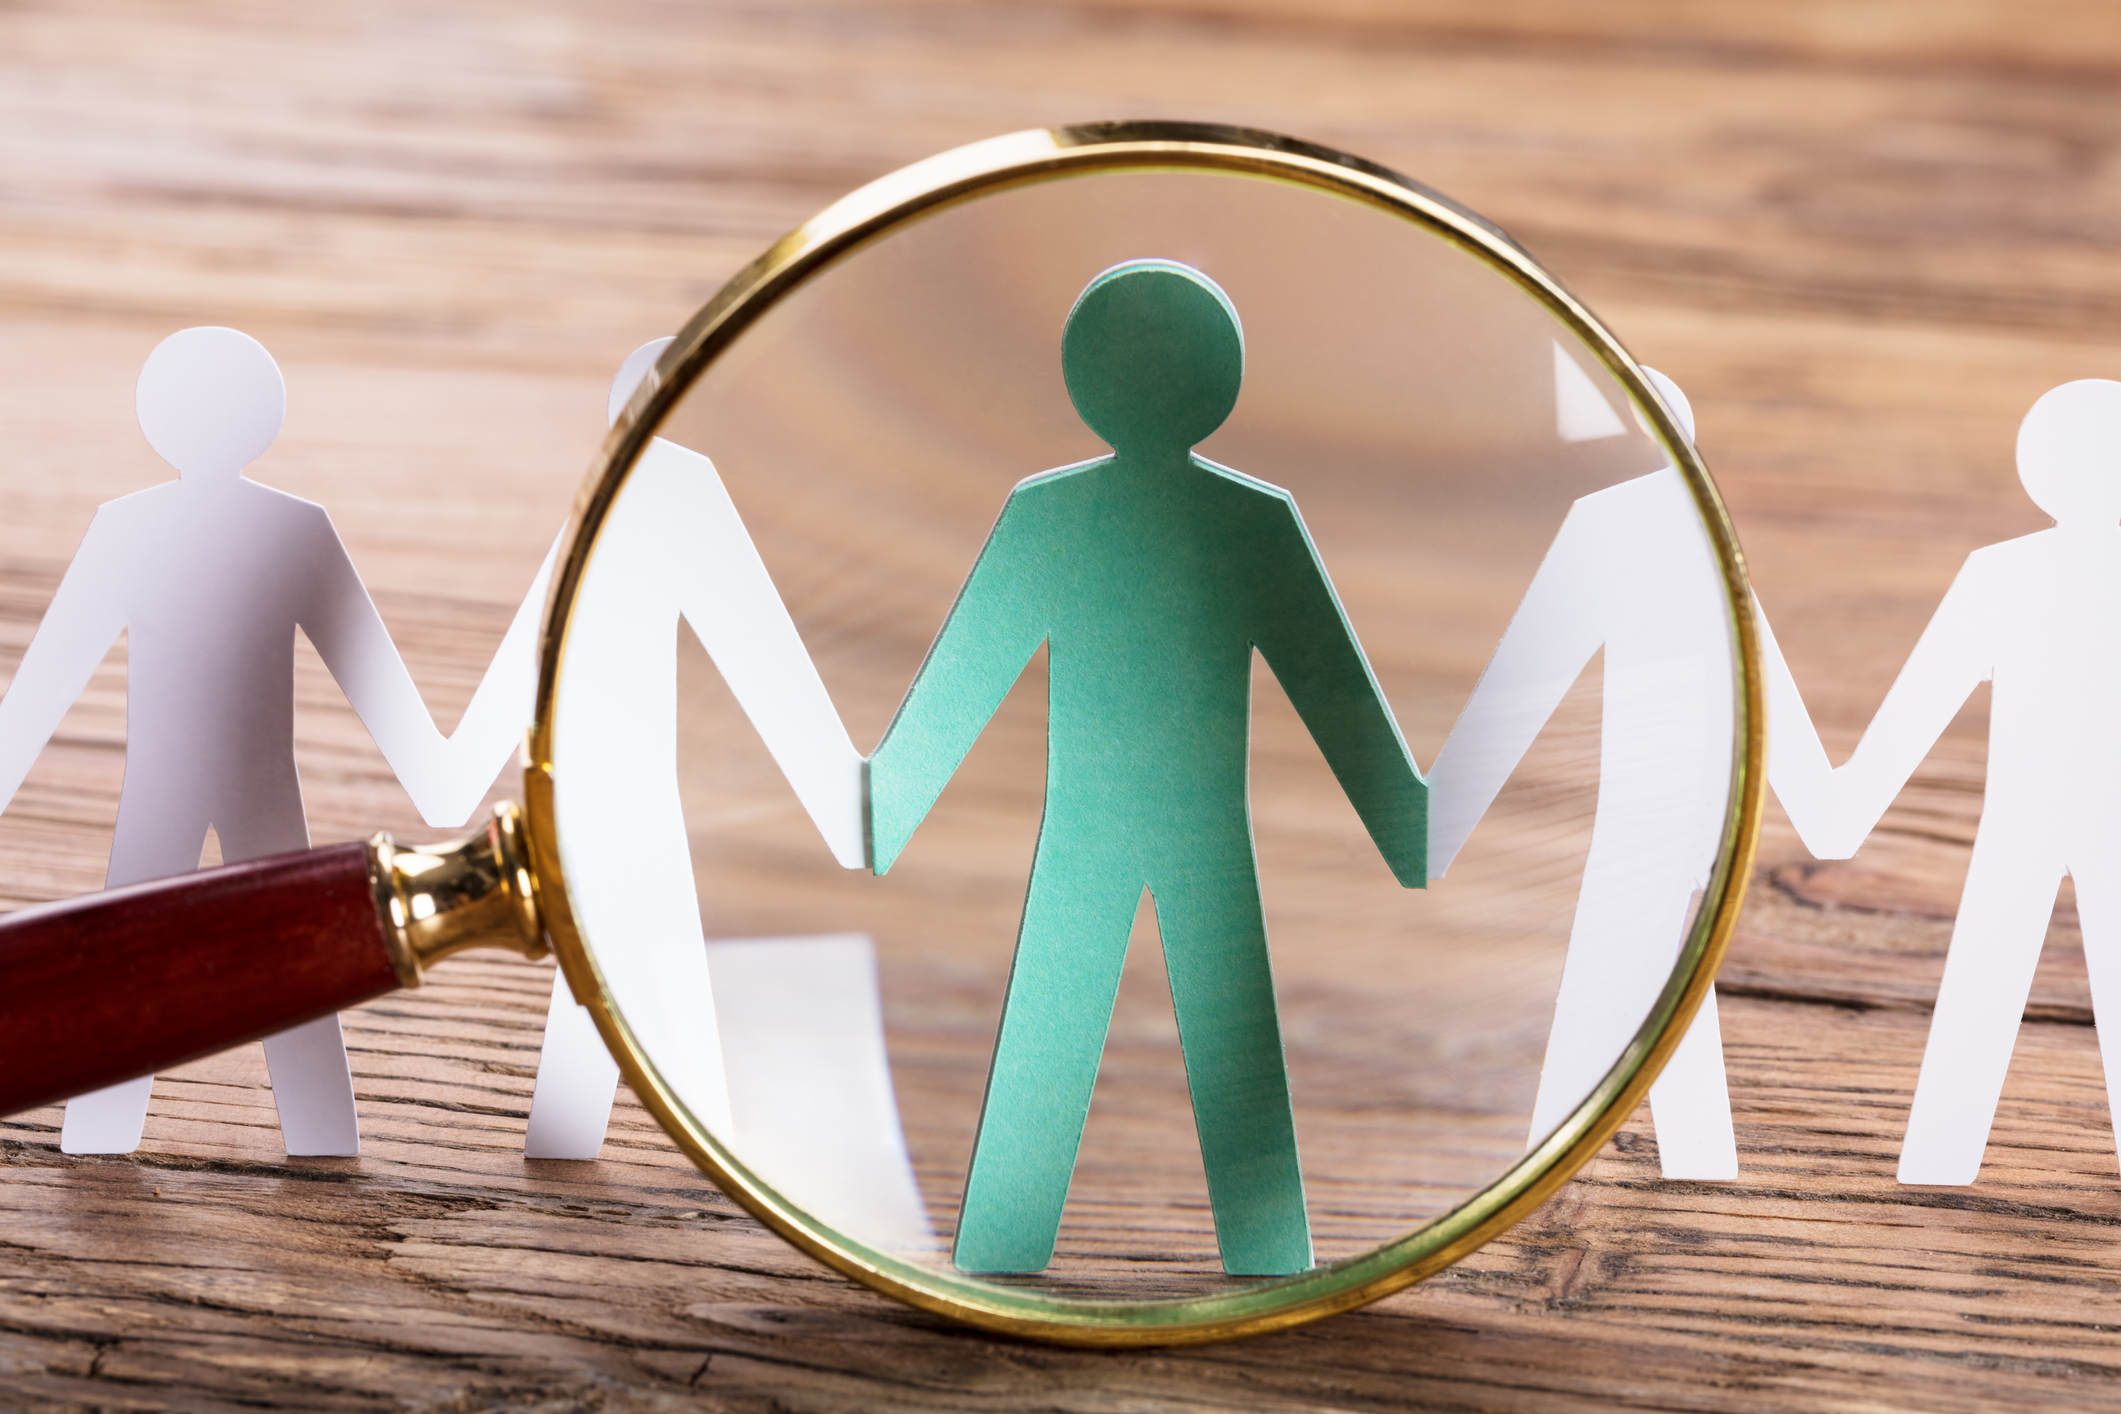 Magnifying Glass On Cut-out Figures On Wooden Desk